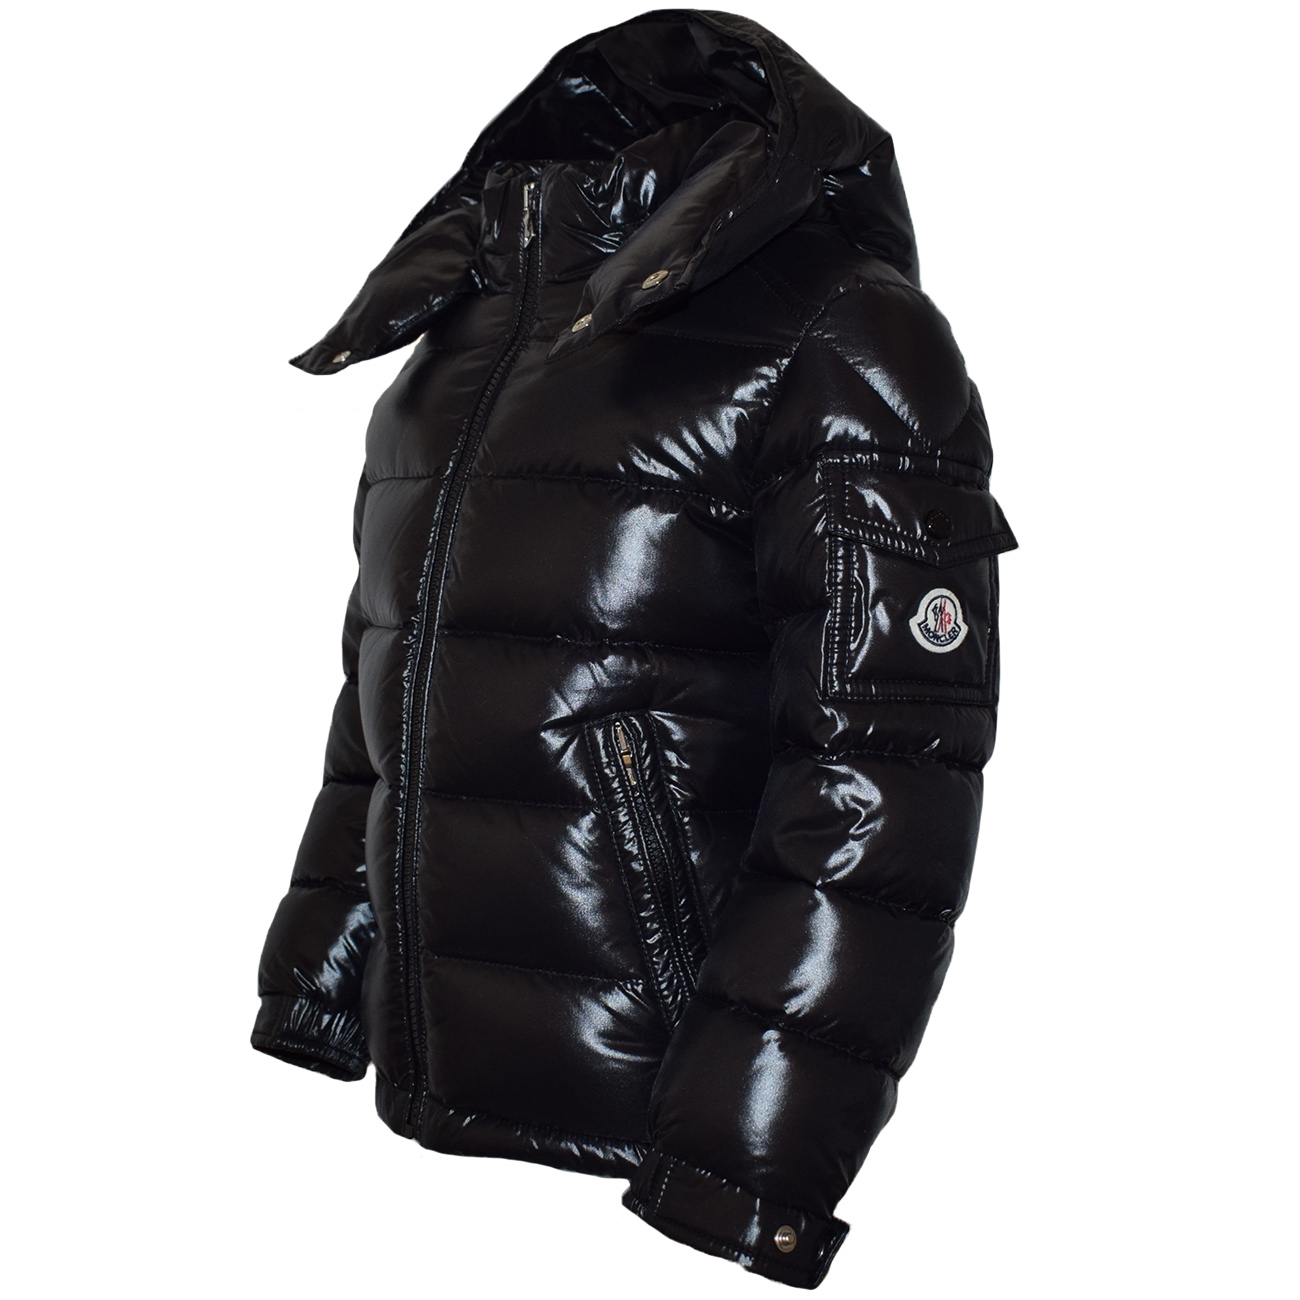 timeless design f391a d0dd1 Moncler New Maya Jacket Black